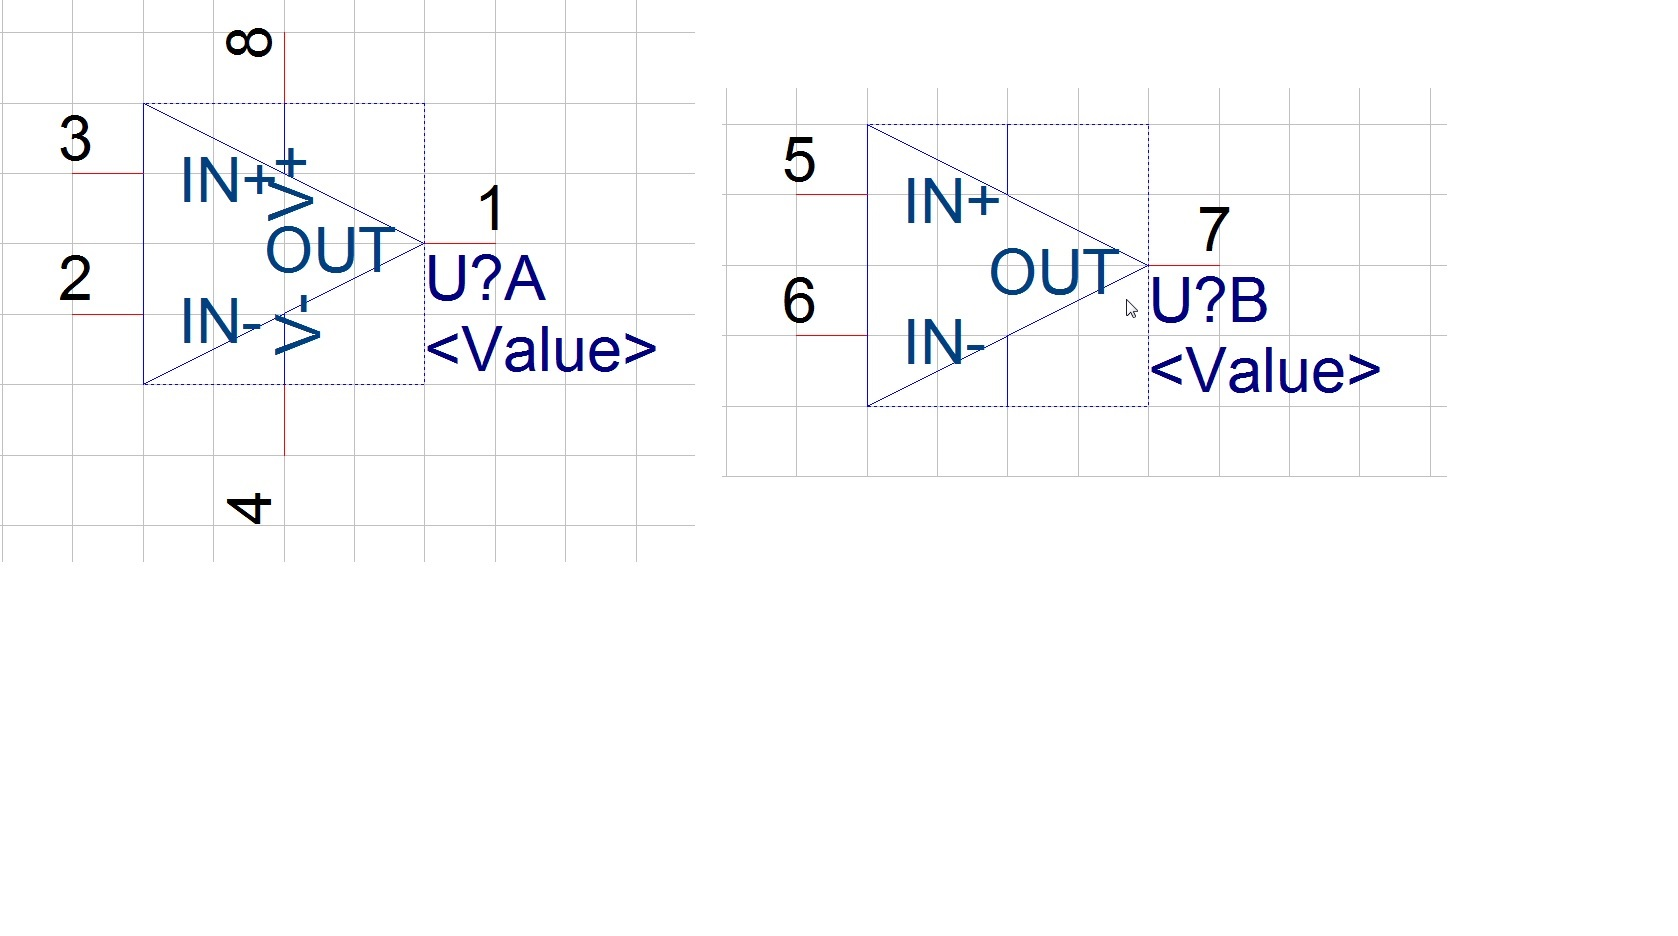 How To Place Heterogeneous Parts In Two Same Hierarchy